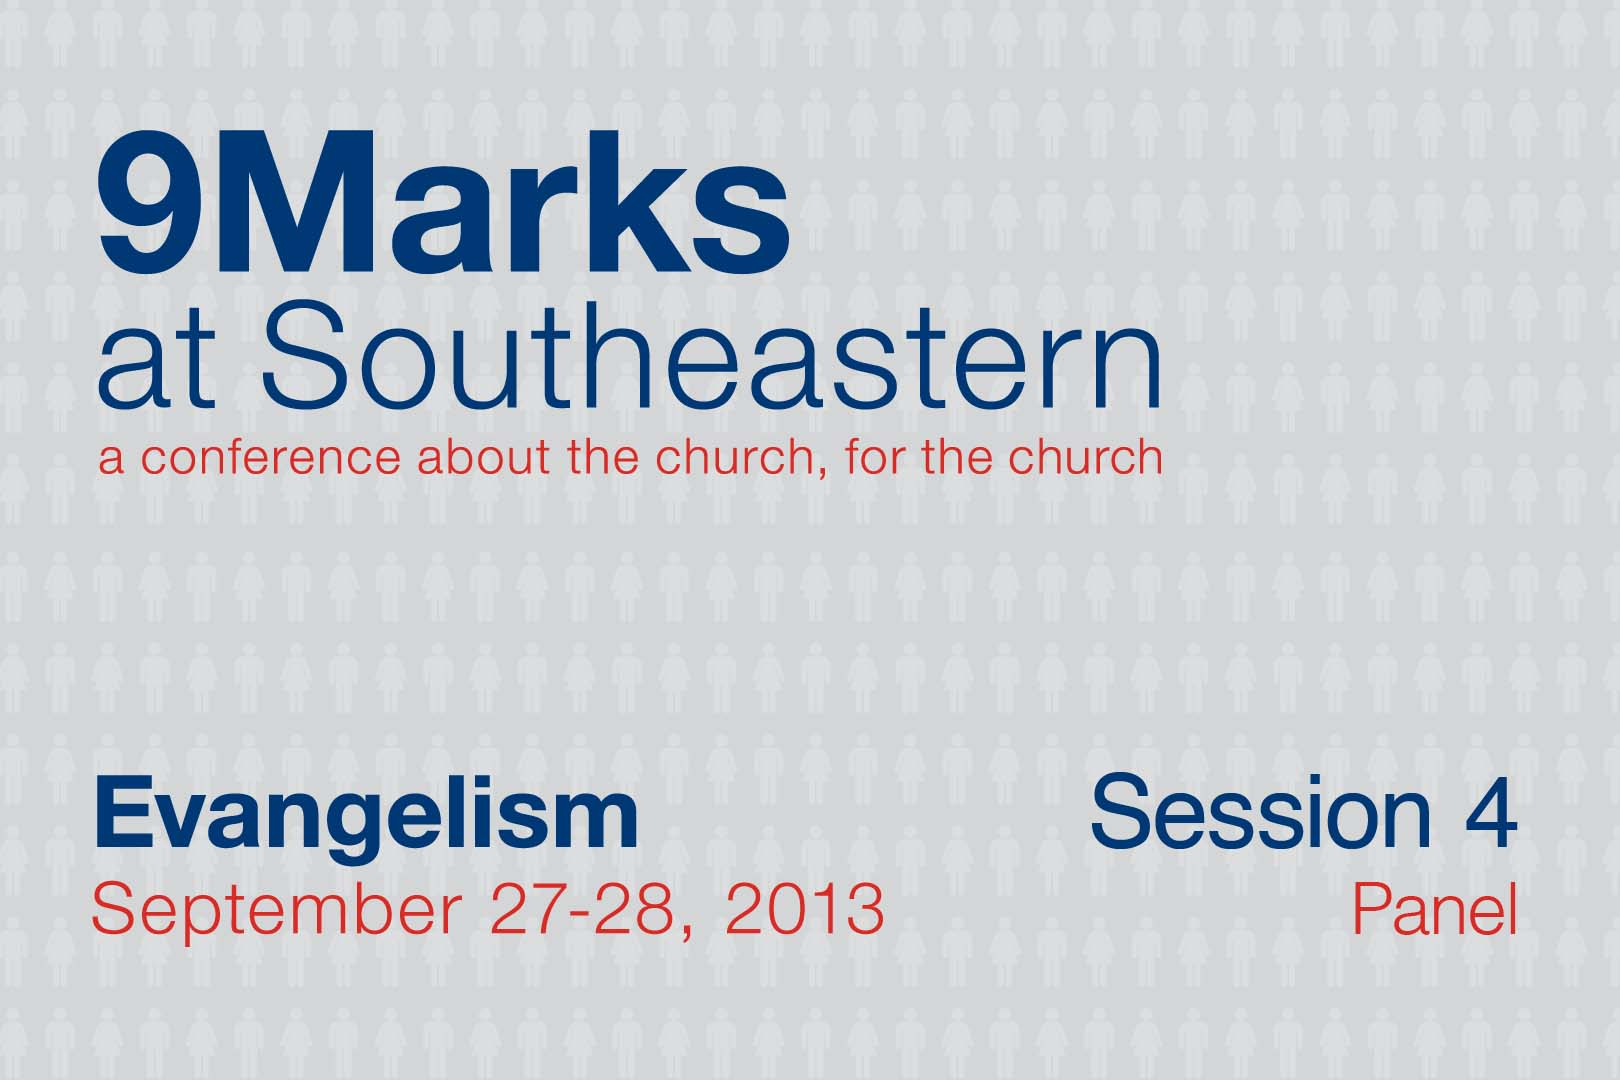 9Marks at Southeastern 2013 – Evangelism: Session 4 Panel